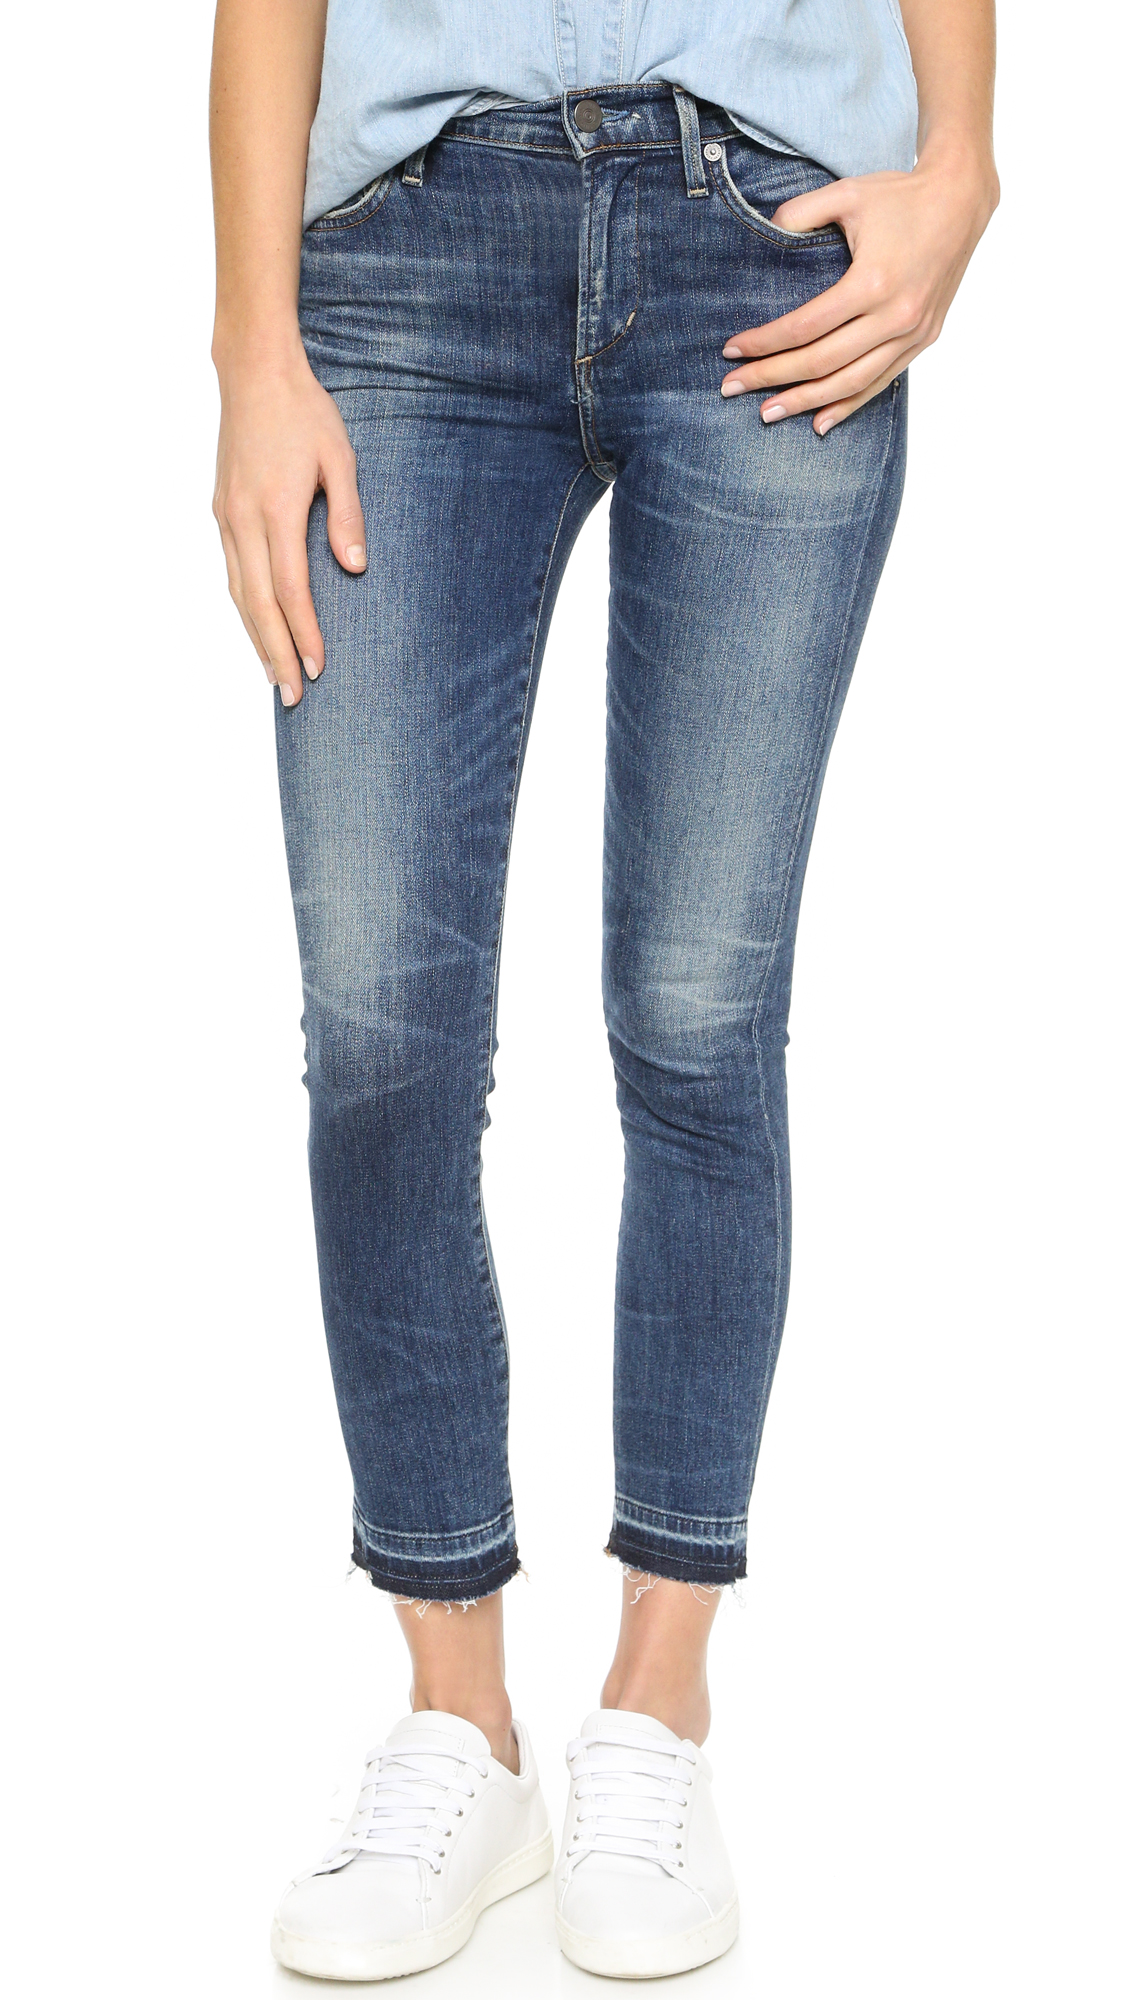 Citizens Of Humanity Rocket Crop High Rise Skinny Jeans - Weekend at Shopbop